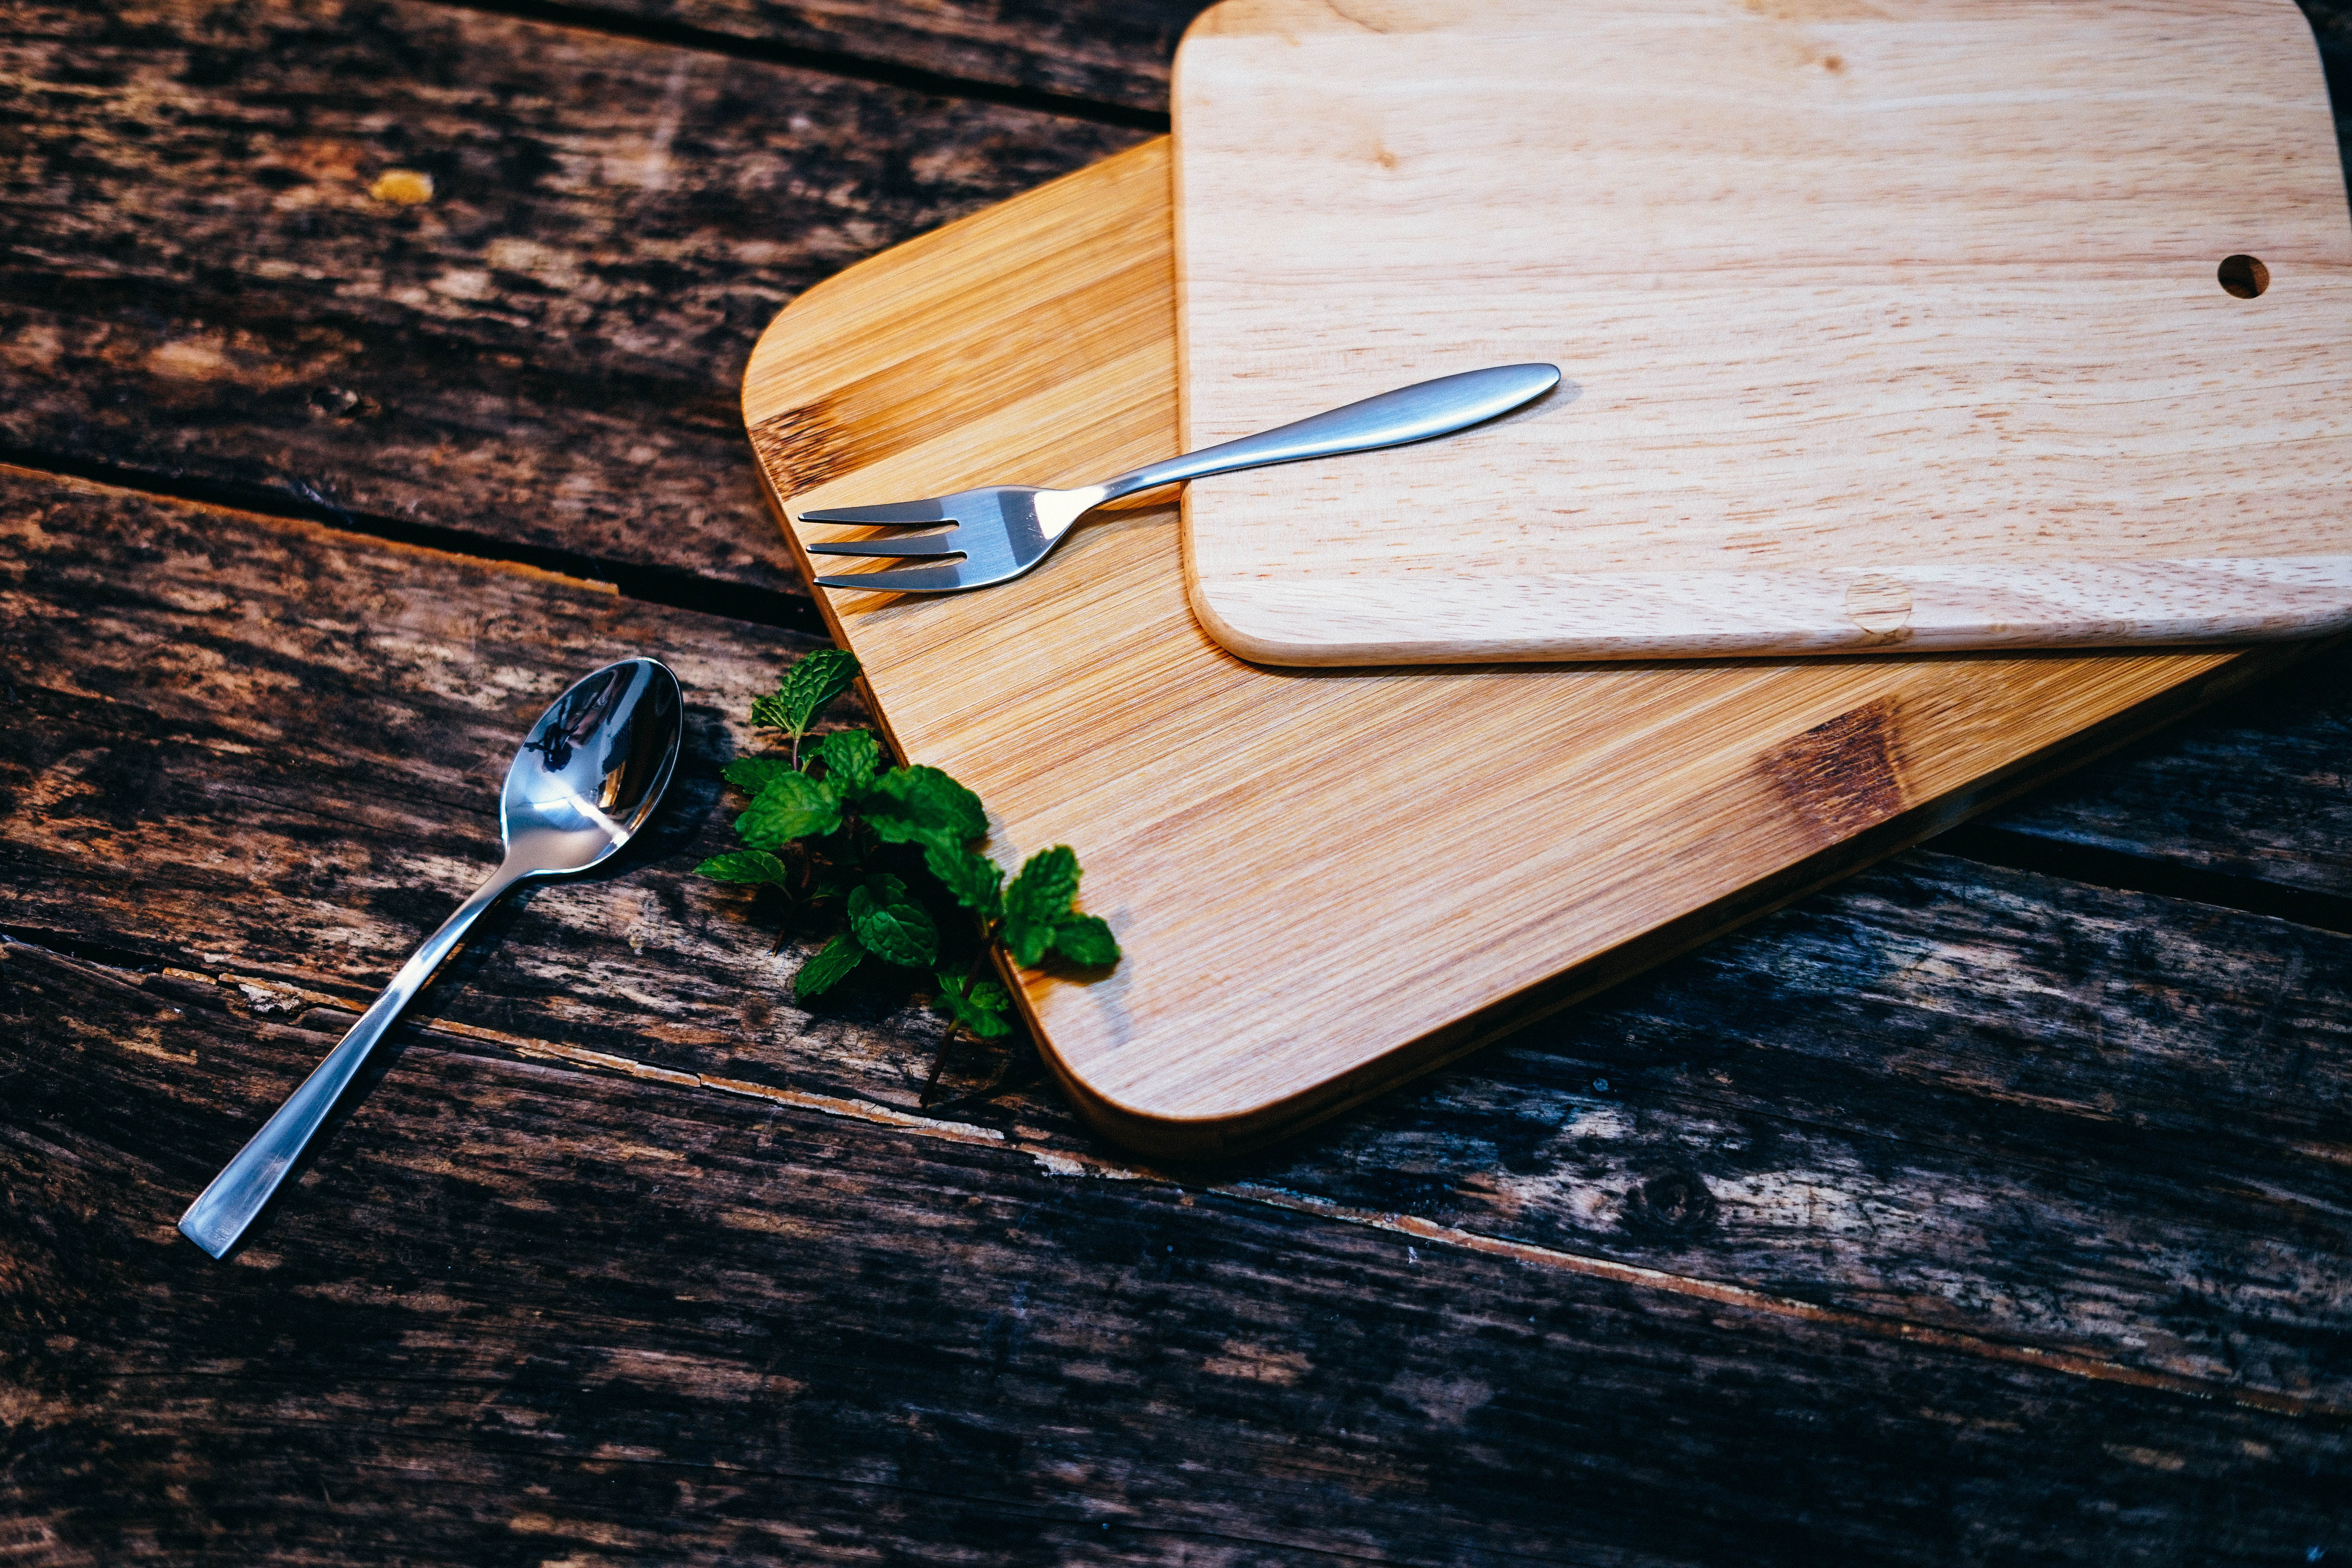 fork and spoon on bamboo cutting boards